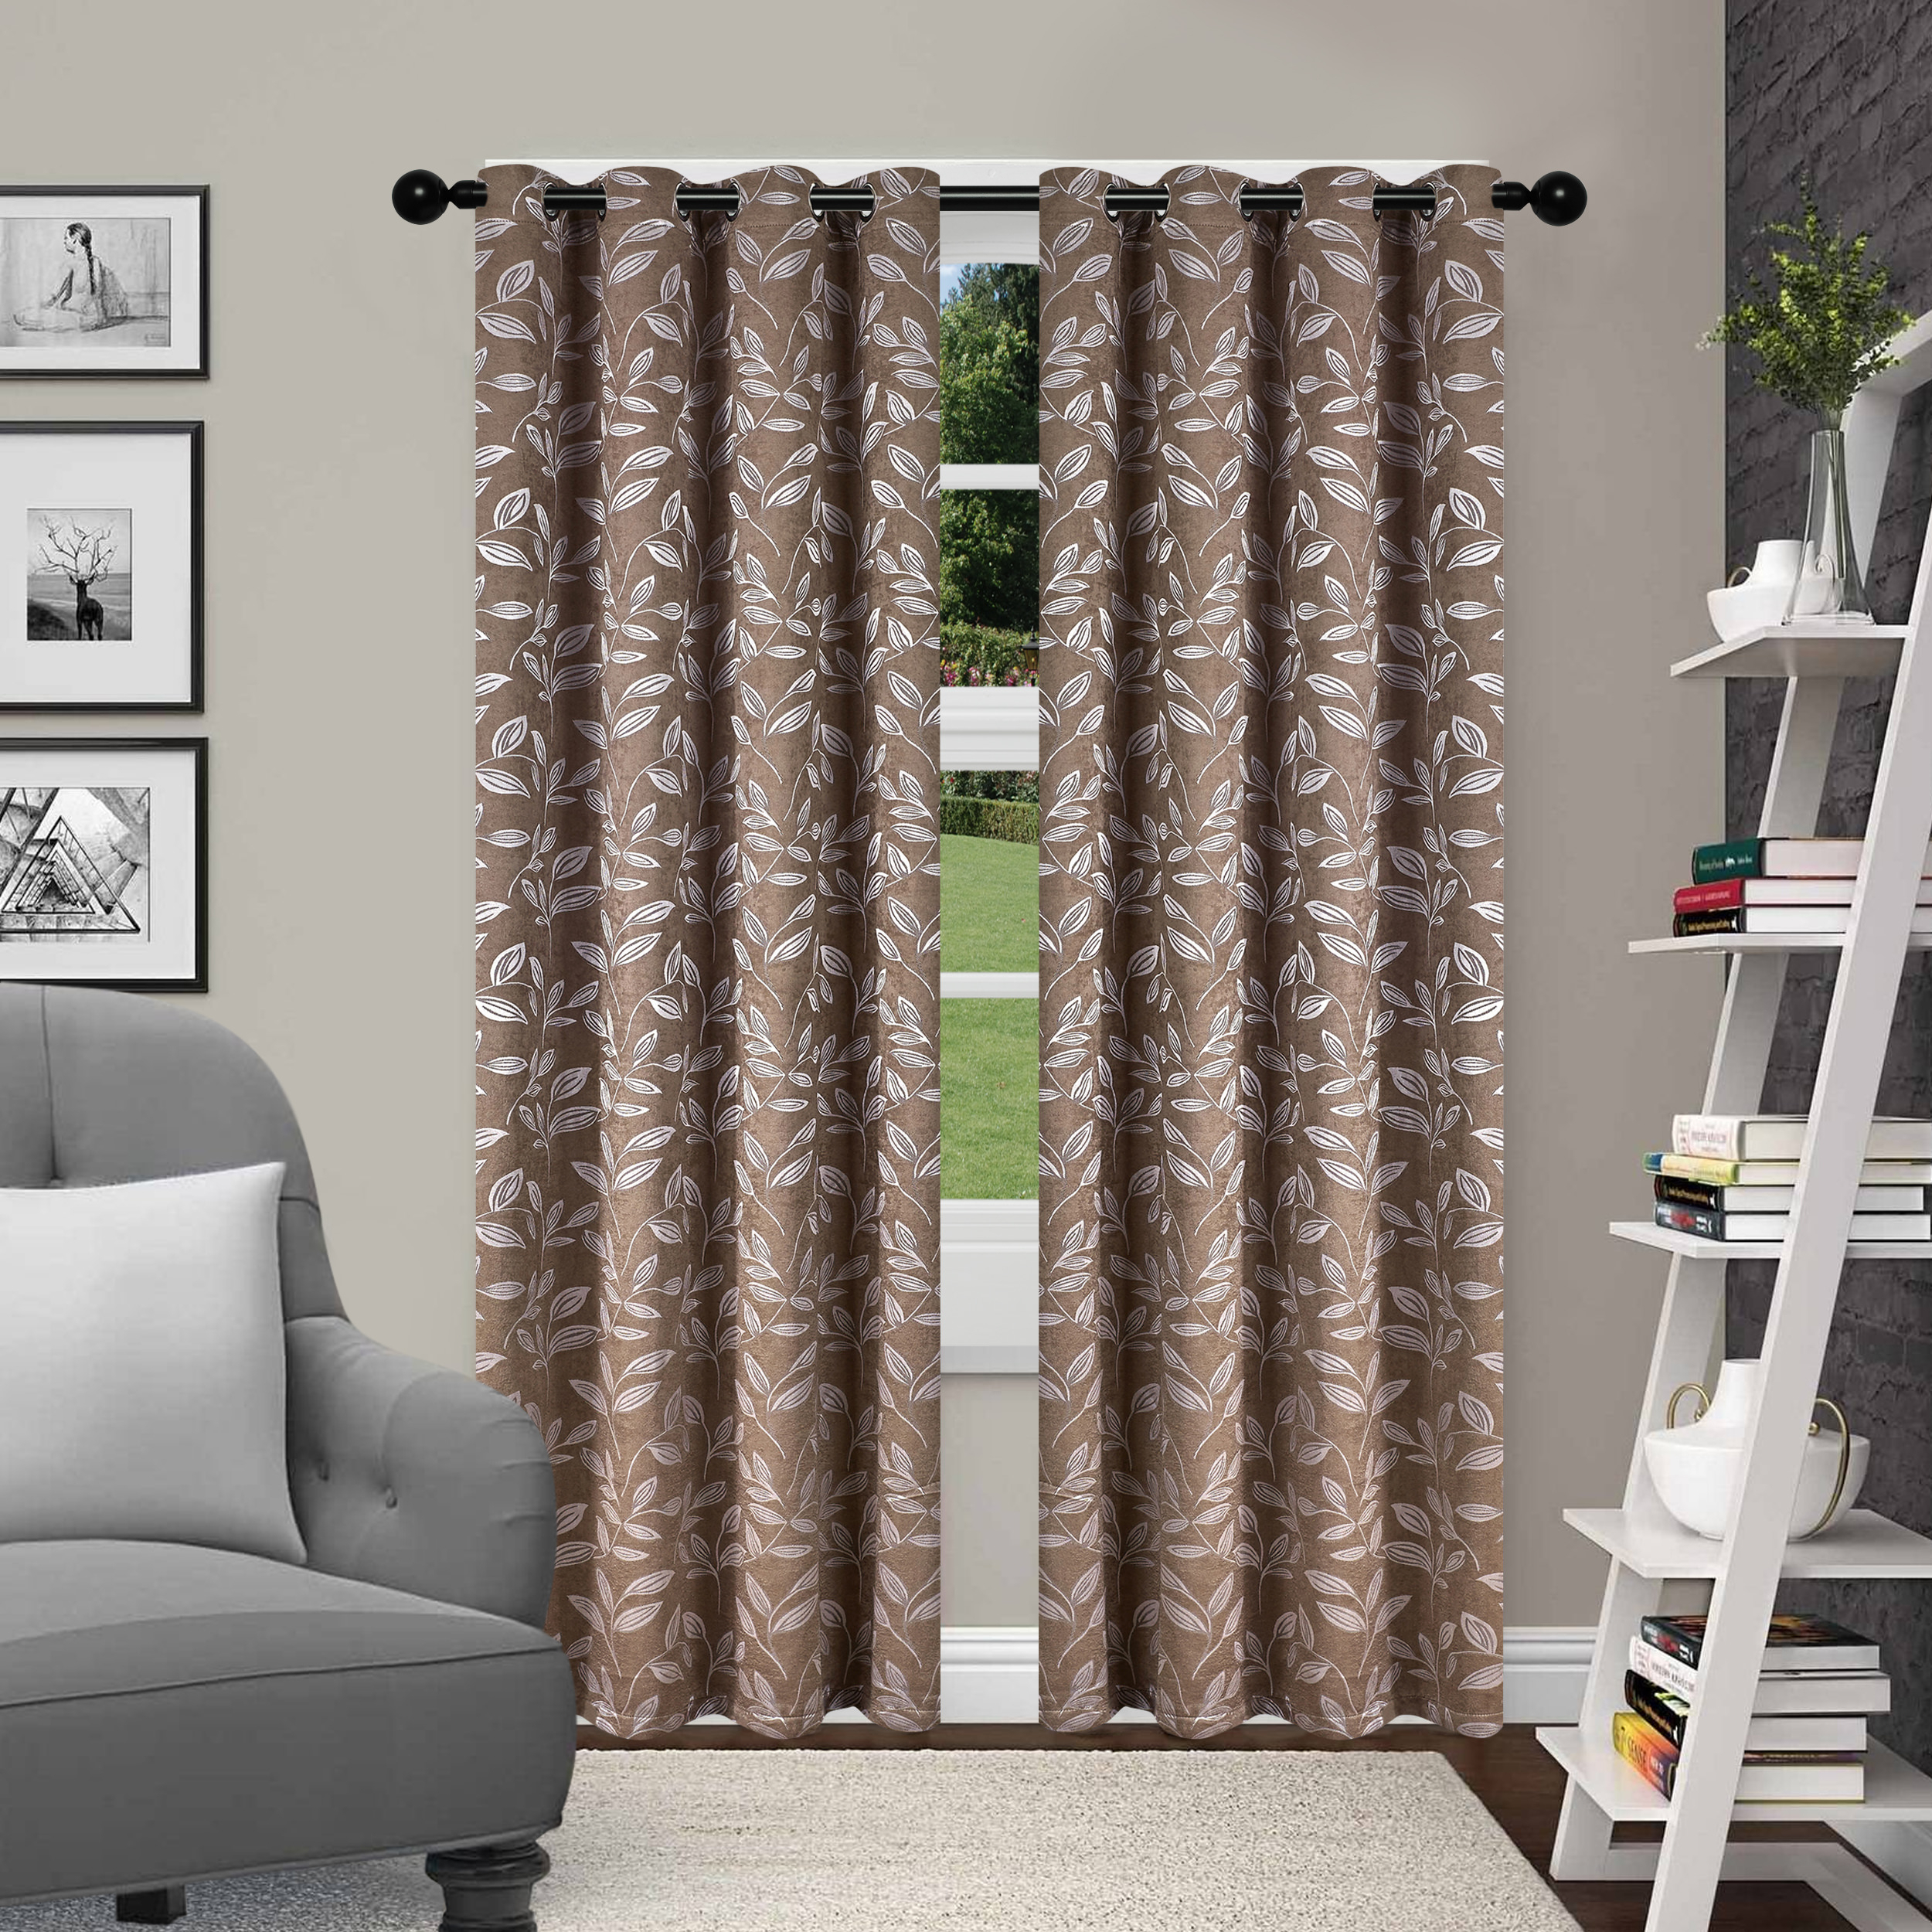 Superior Leaves Textured Blackout Curtain Set Of 2 With With Regard To Grommet Top Thermal Insulated Blackout Curtain Panel Pairs (View 20 of 20)